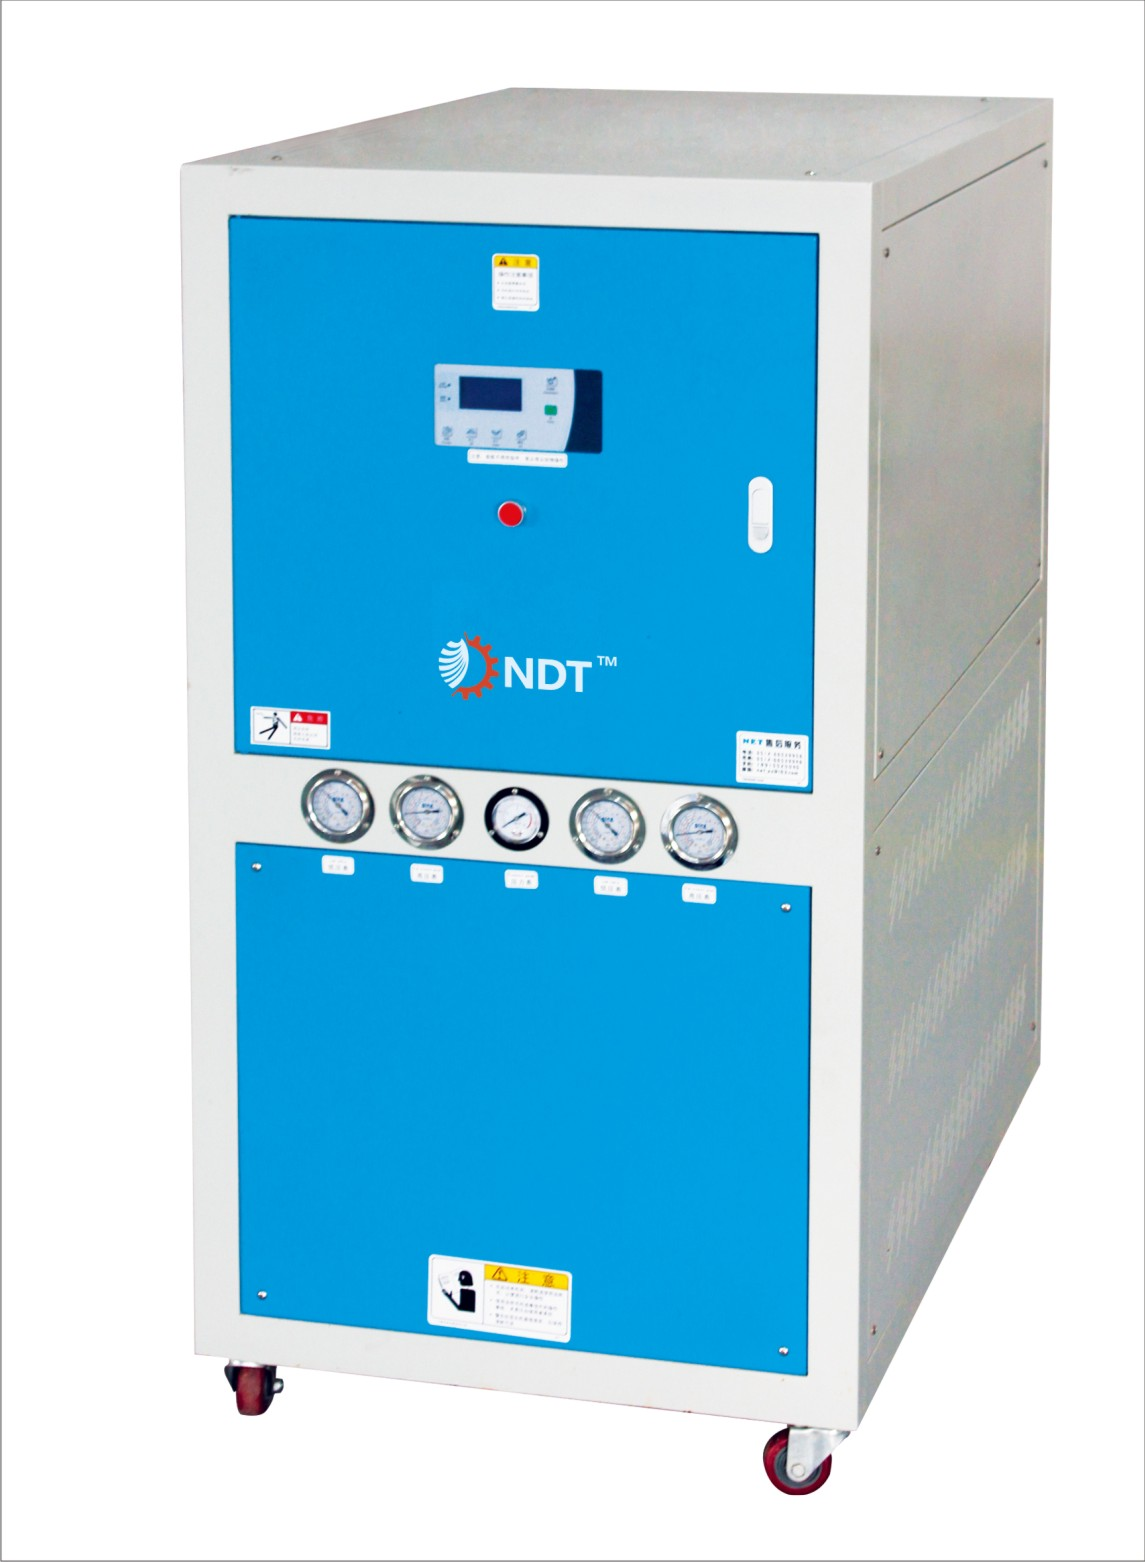 WHY CHOOSE NDETATED CHILLER?